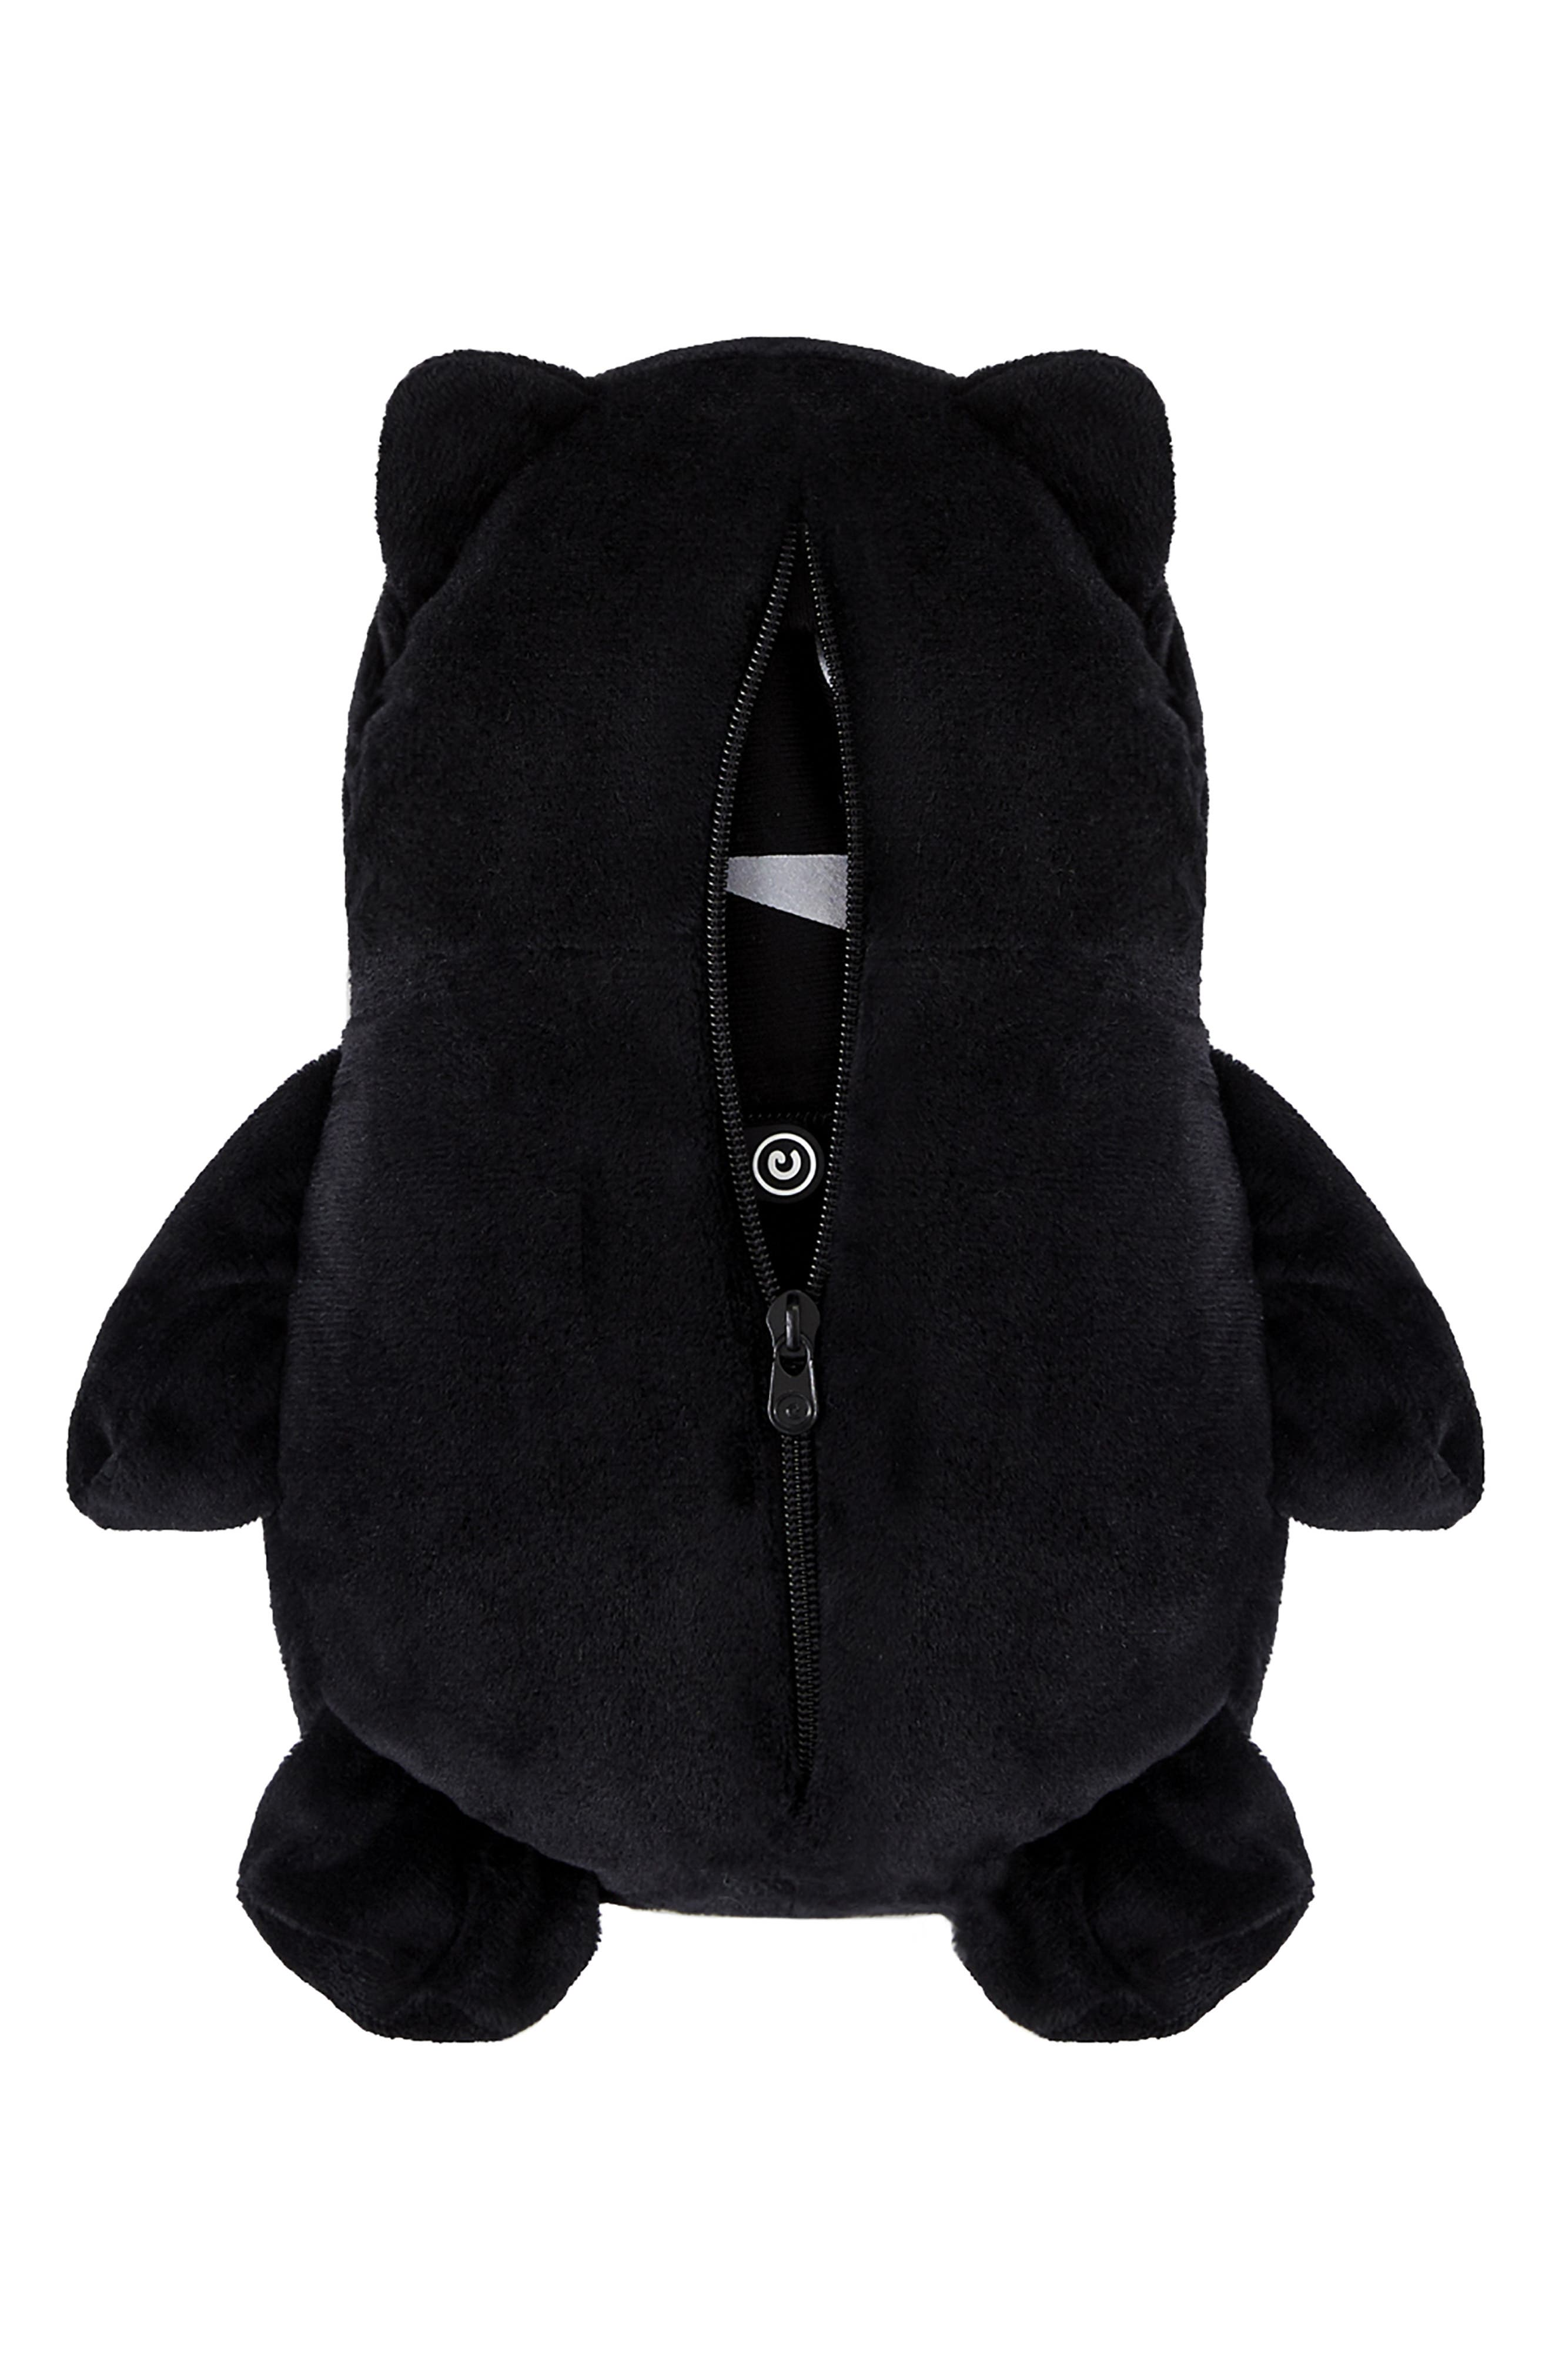 CUBCOATS, Marvel<sup>®</sup> 2018 Black Panther<sup>®</sup> 2-in-1 Stuffed Animal Hoodie, Alternate thumbnail 4, color, BLACK